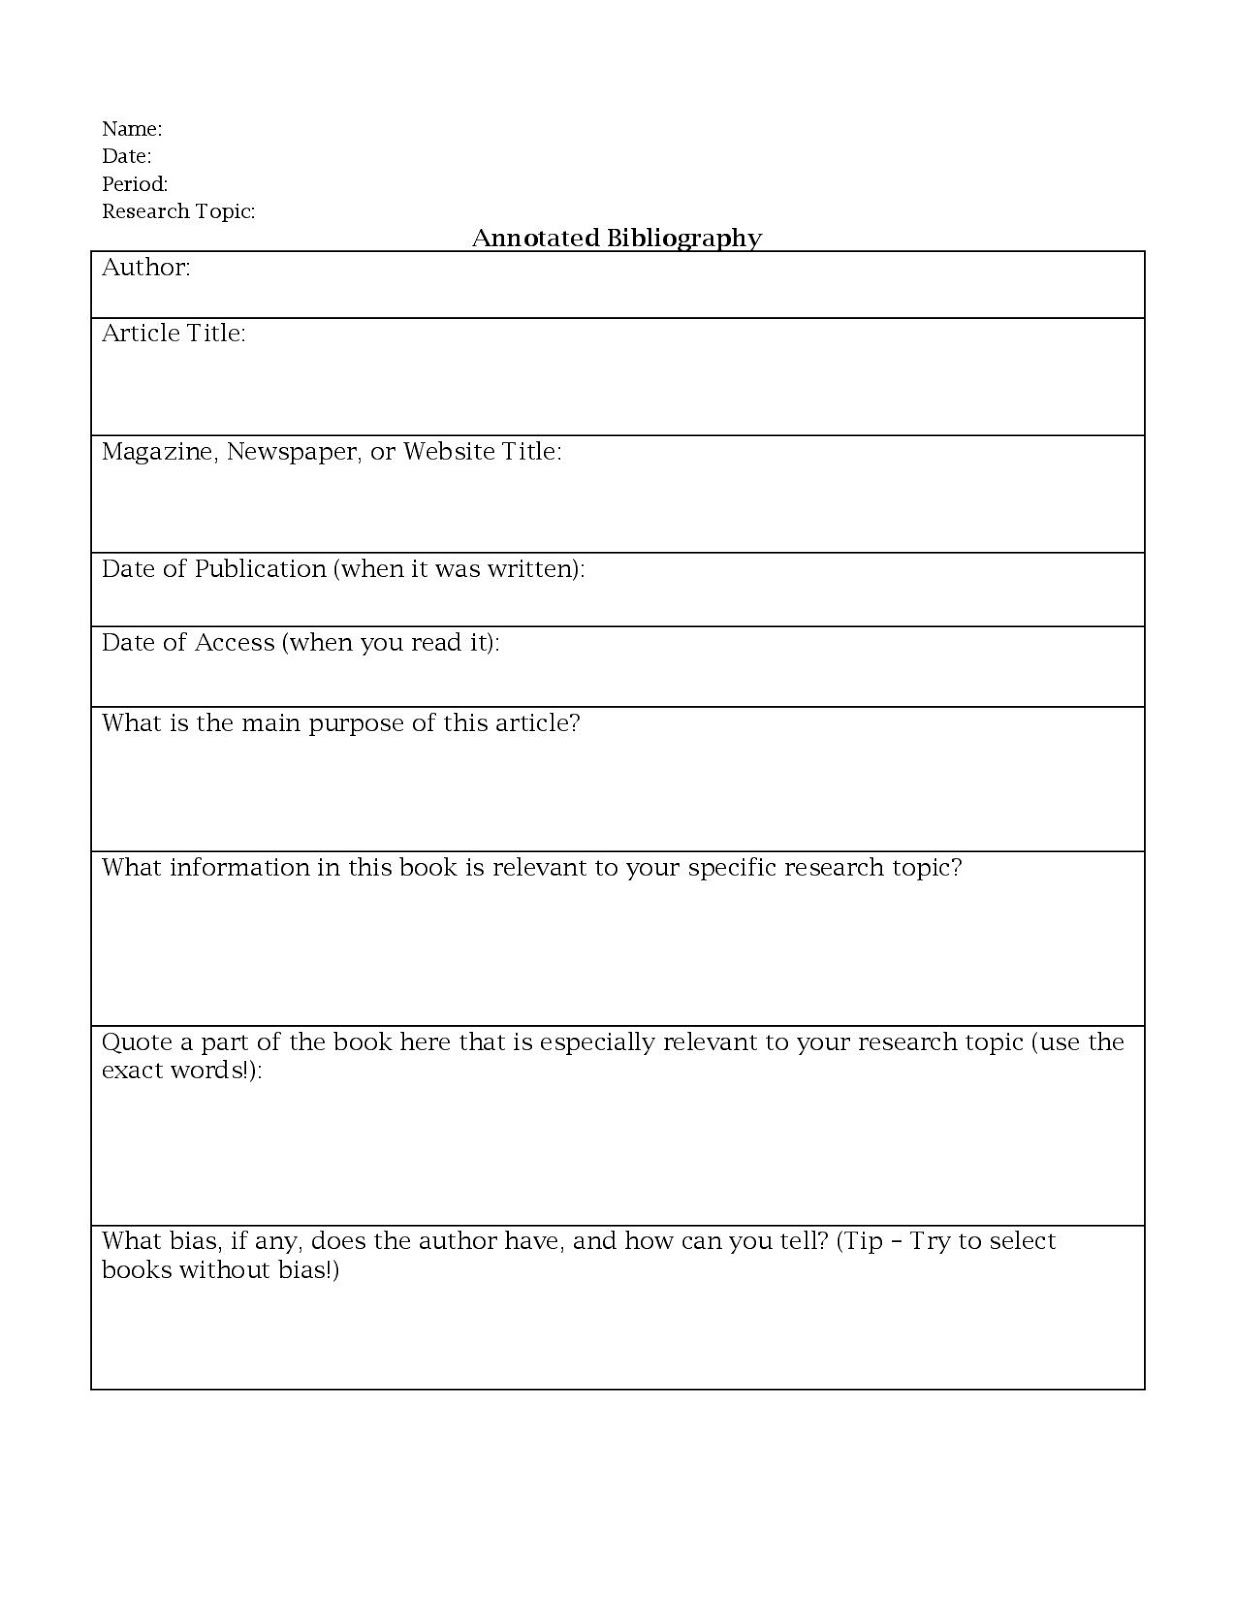 worksheet Bibliography Worksheet miss k s english 9 annotated bibliography worksheet school worksheet